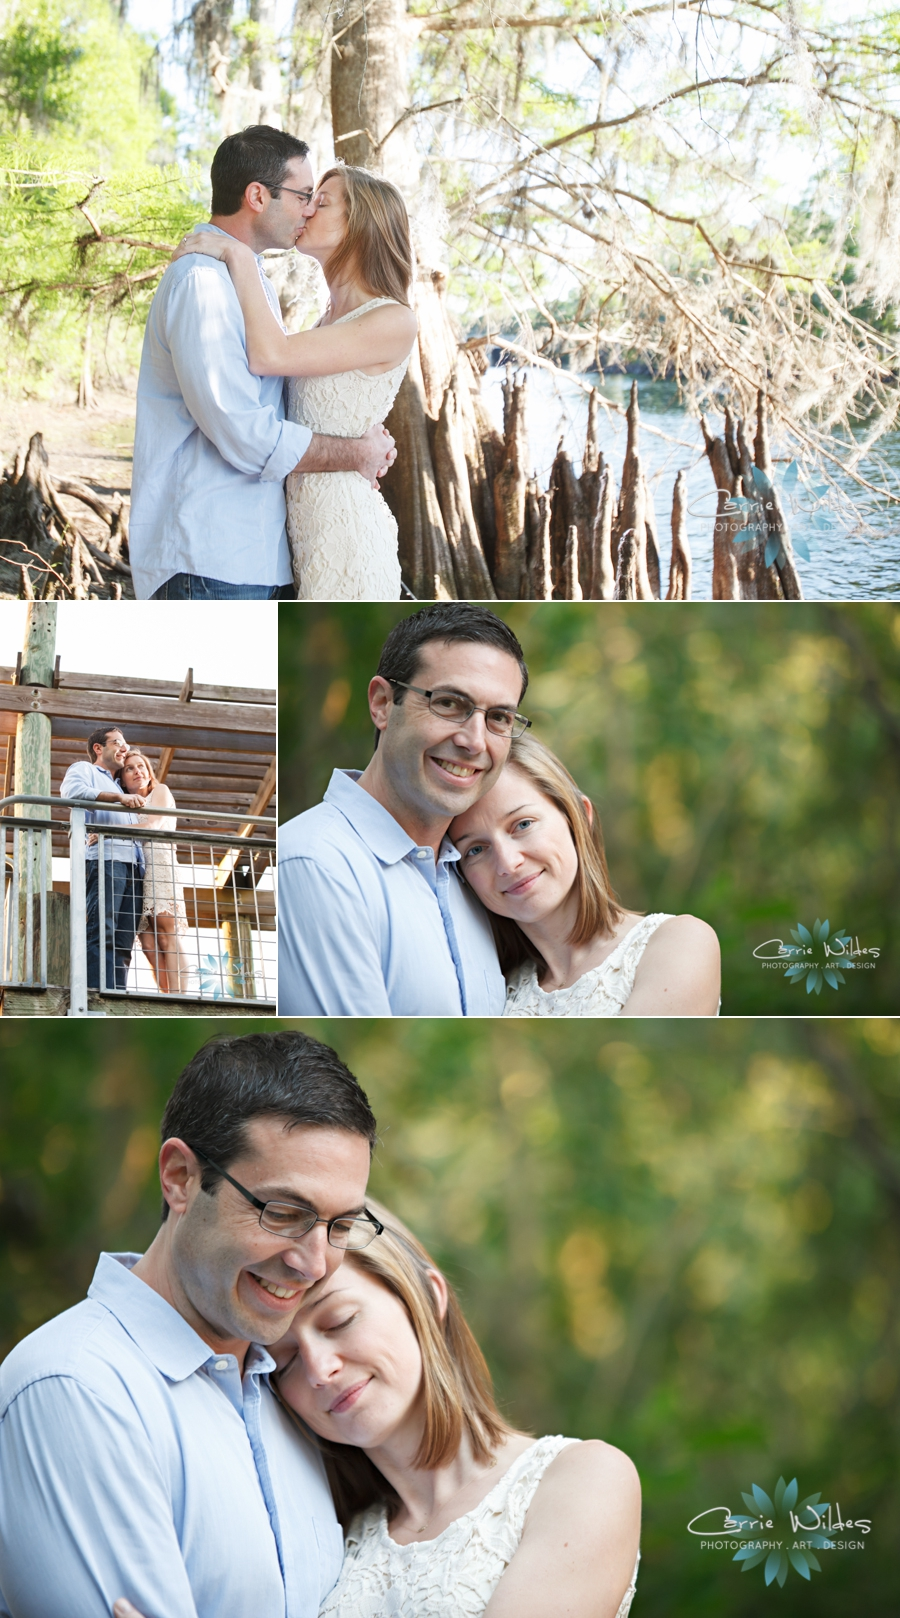 3_29_13 Hillsborough River St. Park Engagement Session_0002.jpg